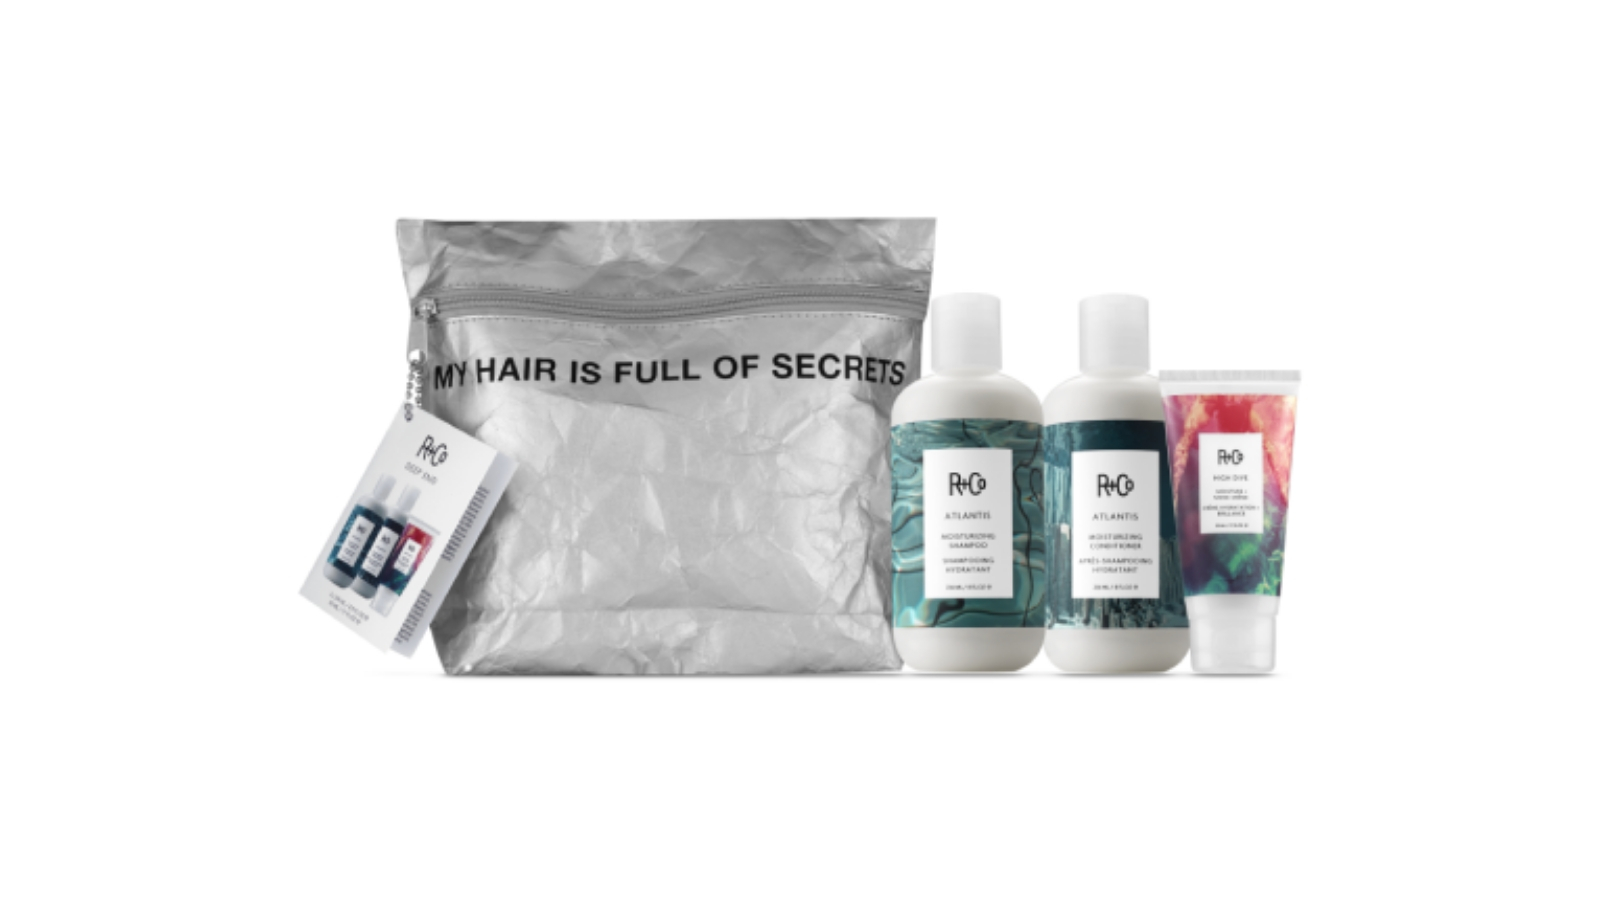 R+Co Deep End Pack $75